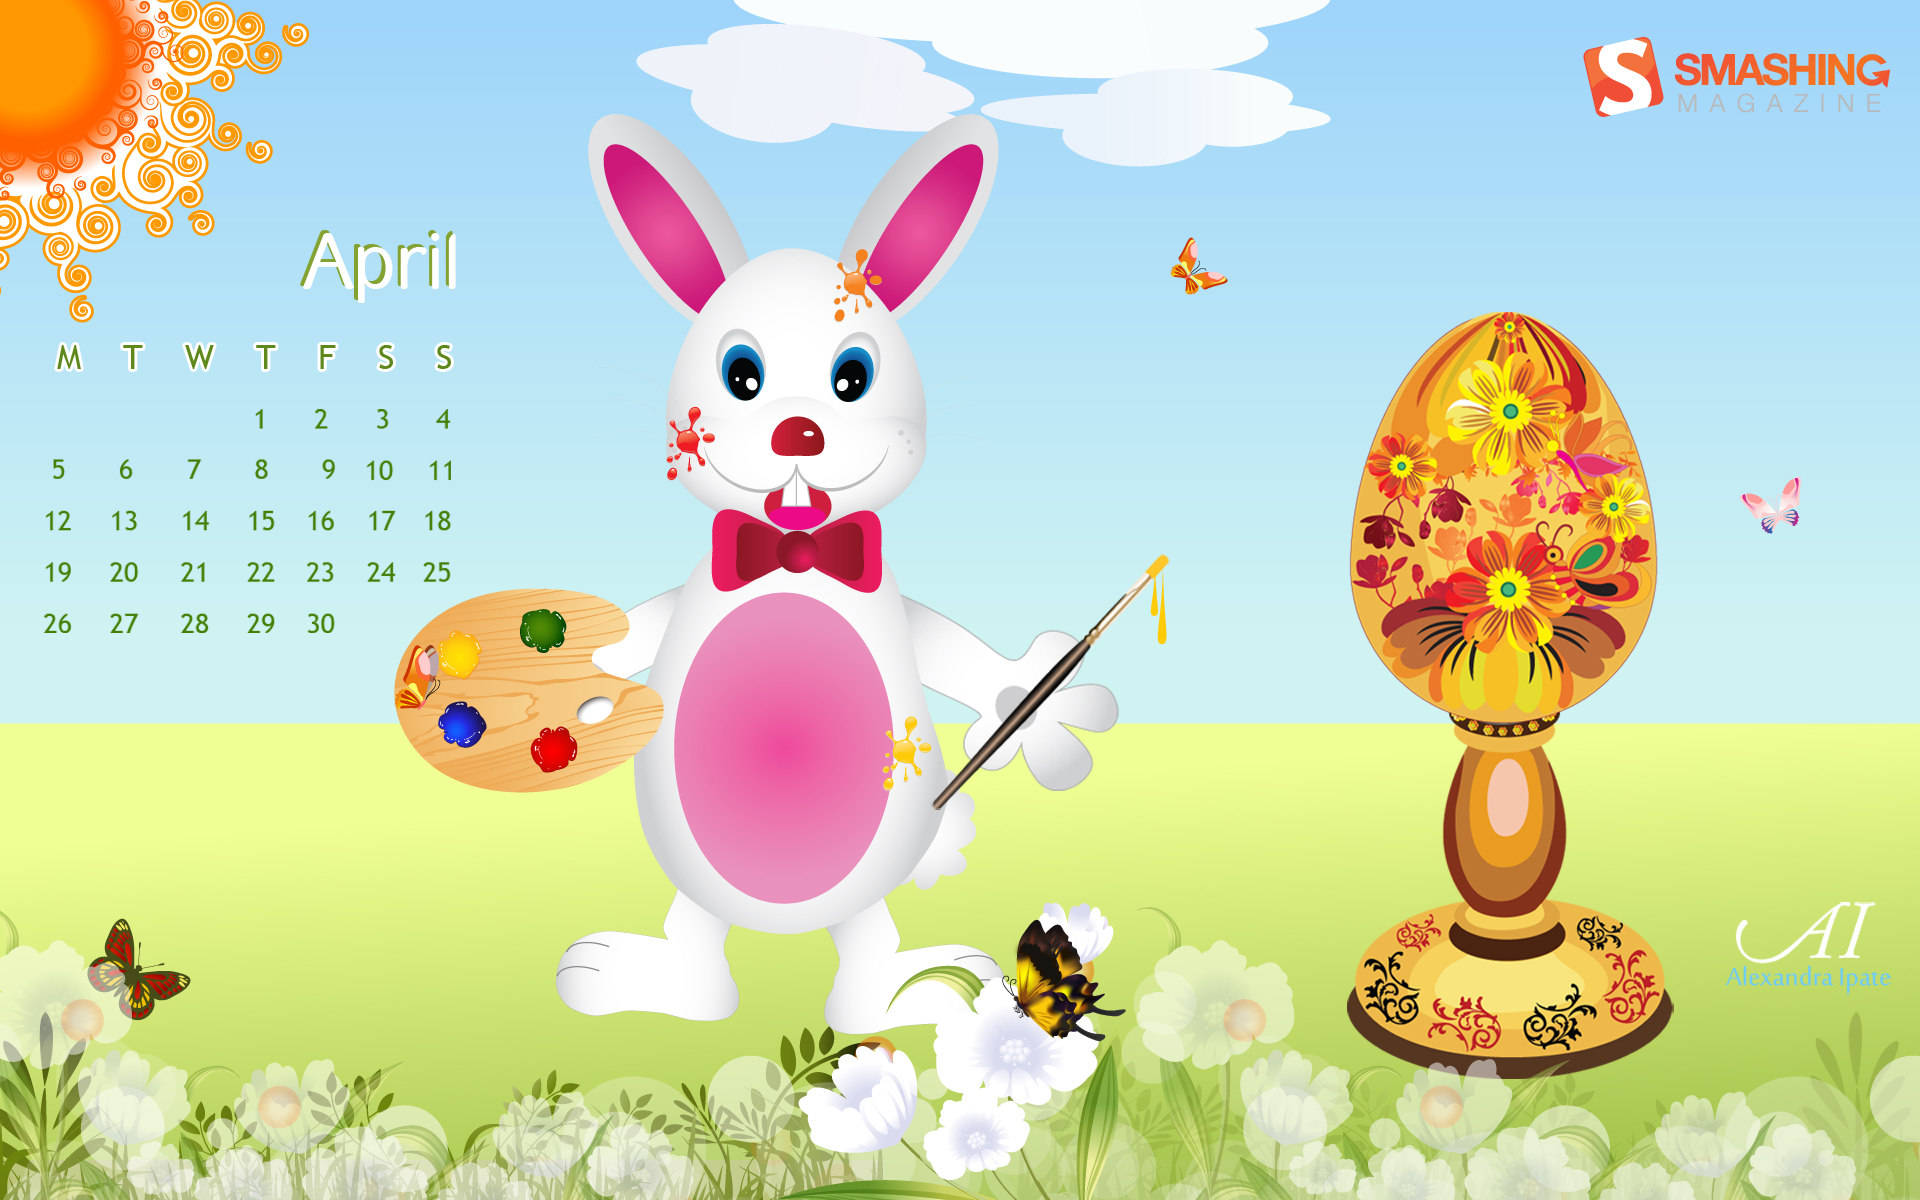 Calendar Wallpaper for April 5132